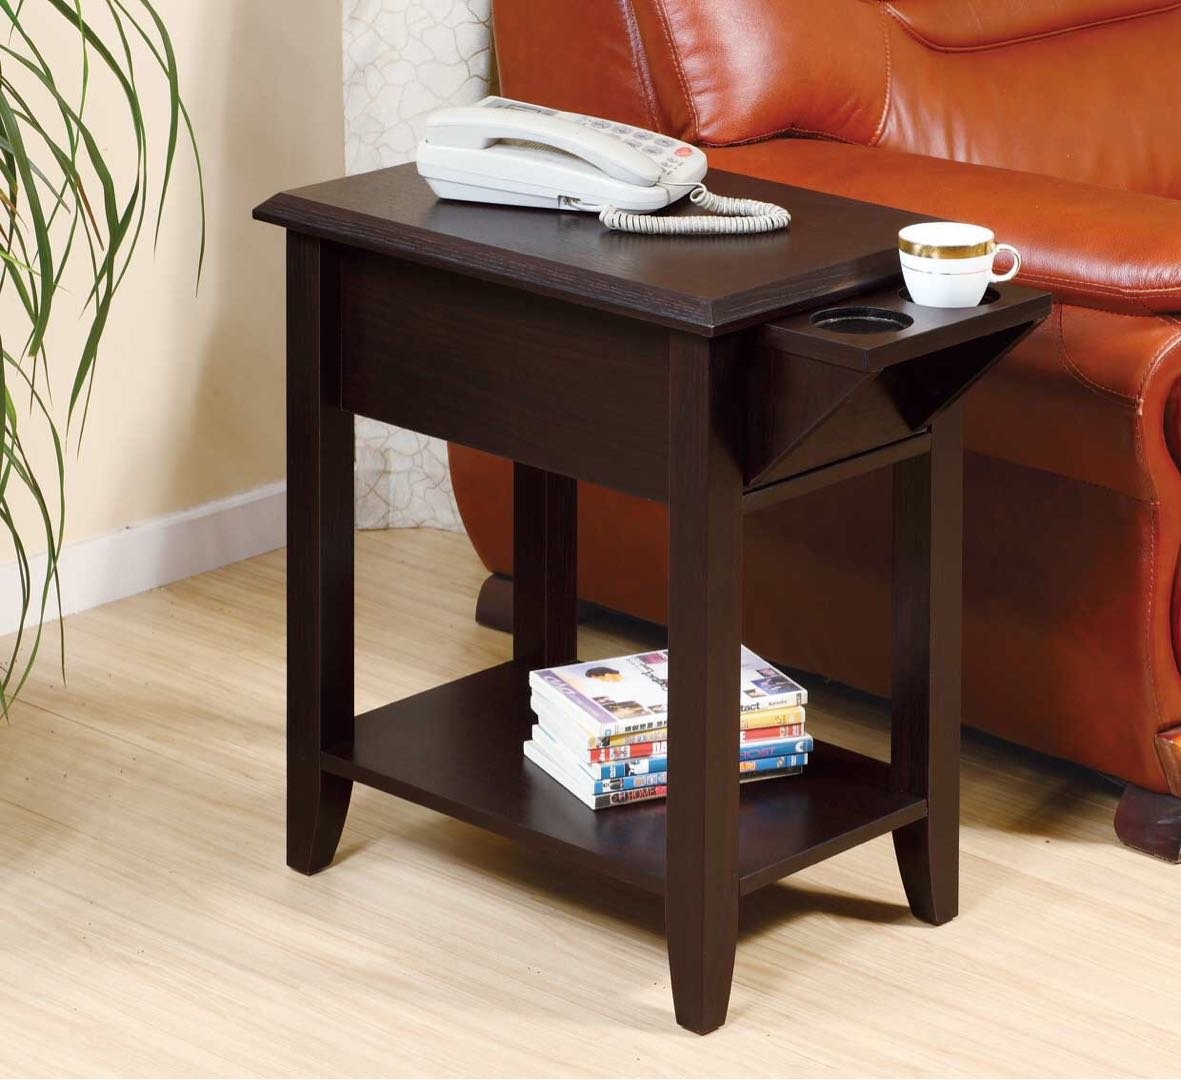 small end tables you love tollett chairside table with storage patchen accent quickview ashley furniture mattress desk foyer bench marilyn monroe bedroom decor round vinyl